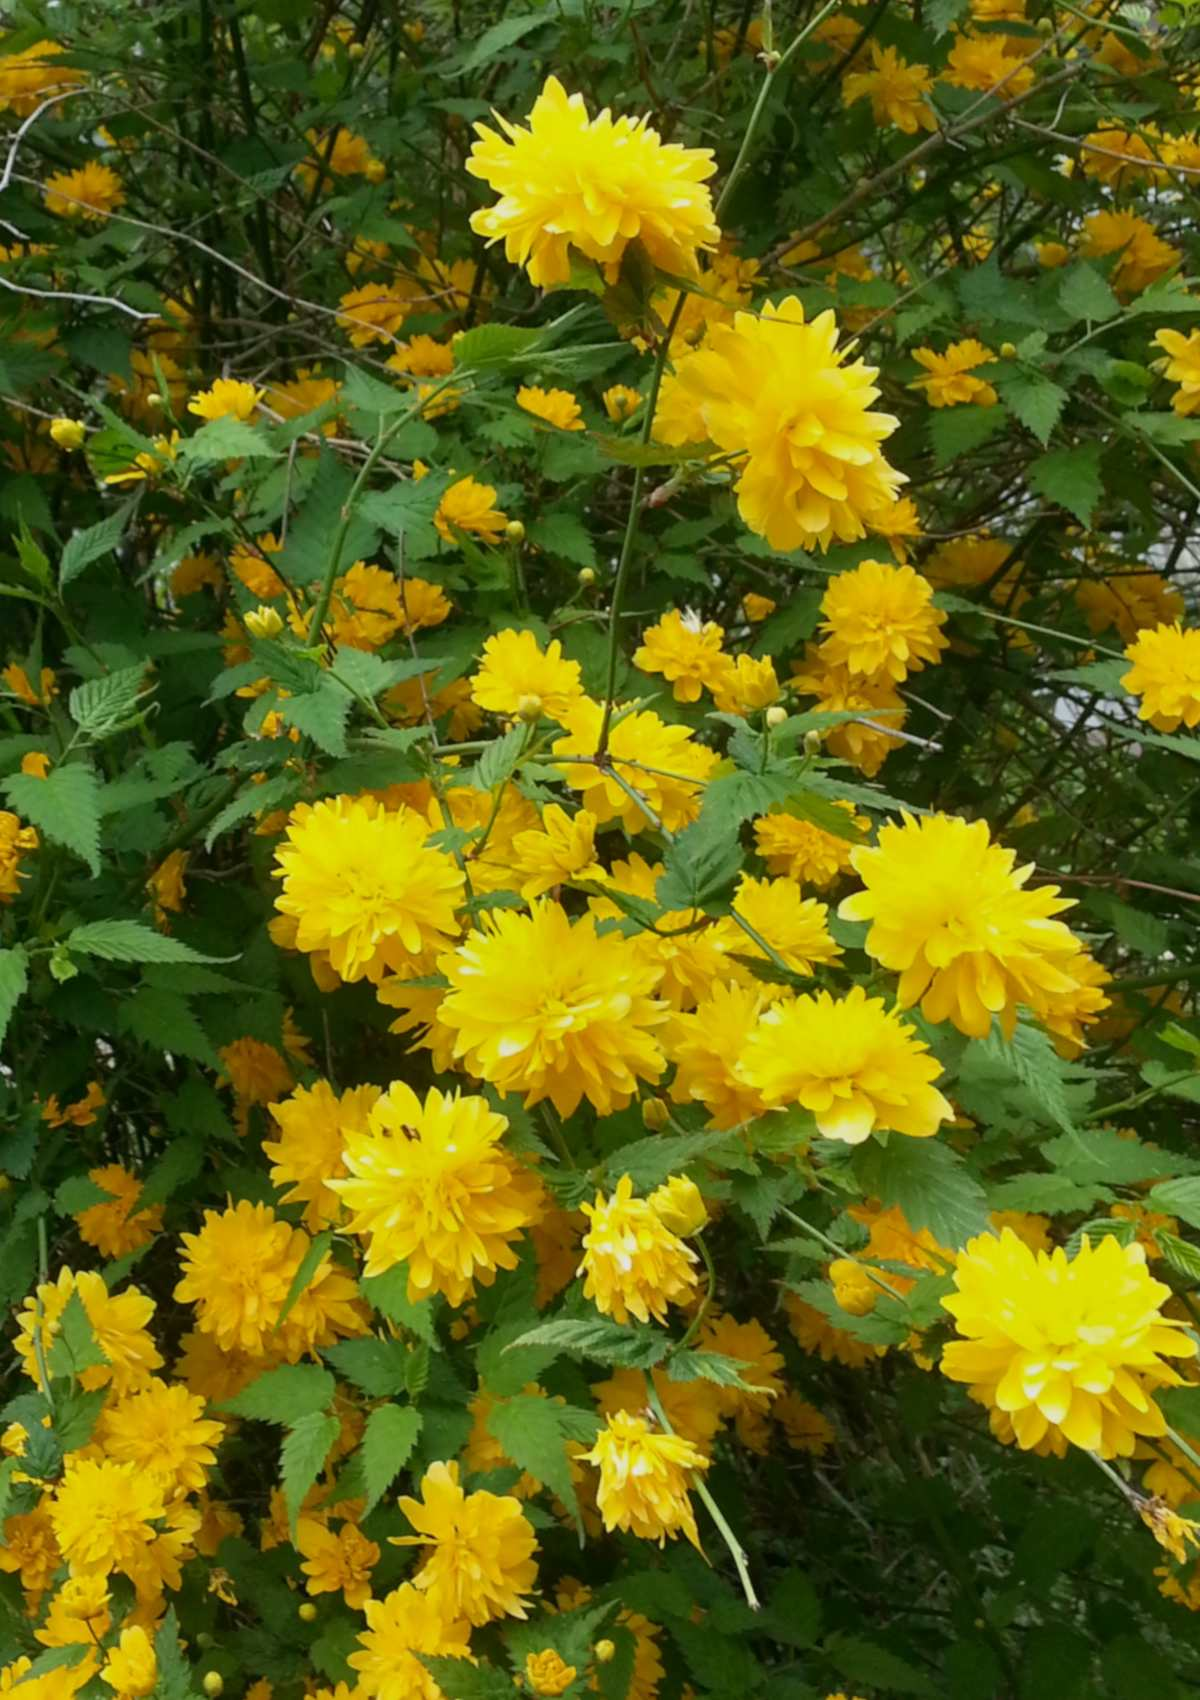 Full shrub with yellow kerria blooms.